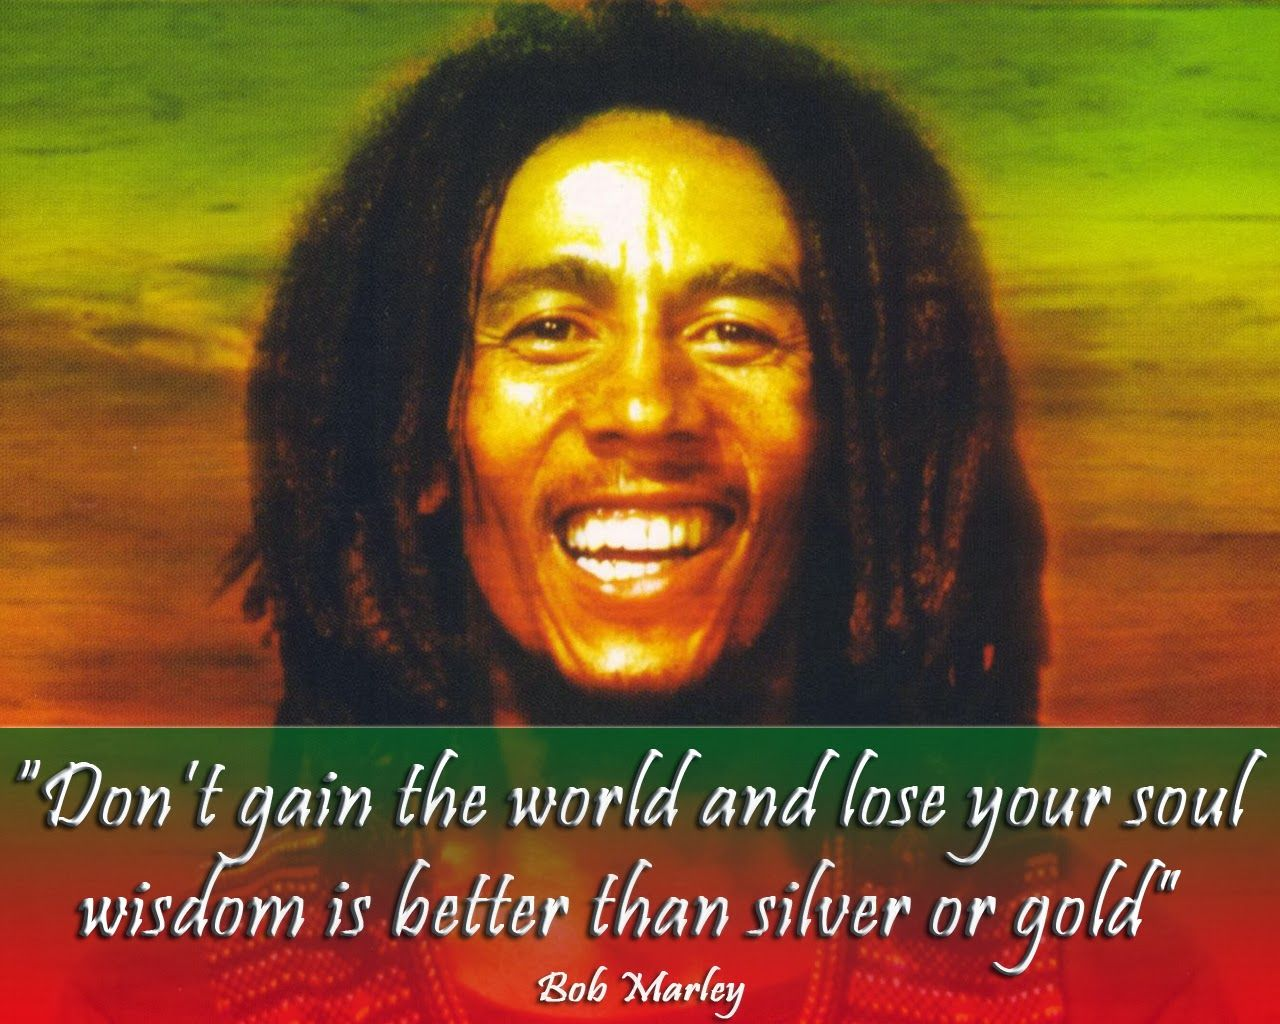 10 Bob Marley Quotes to Inspire the Peaceful Revolutionary Within